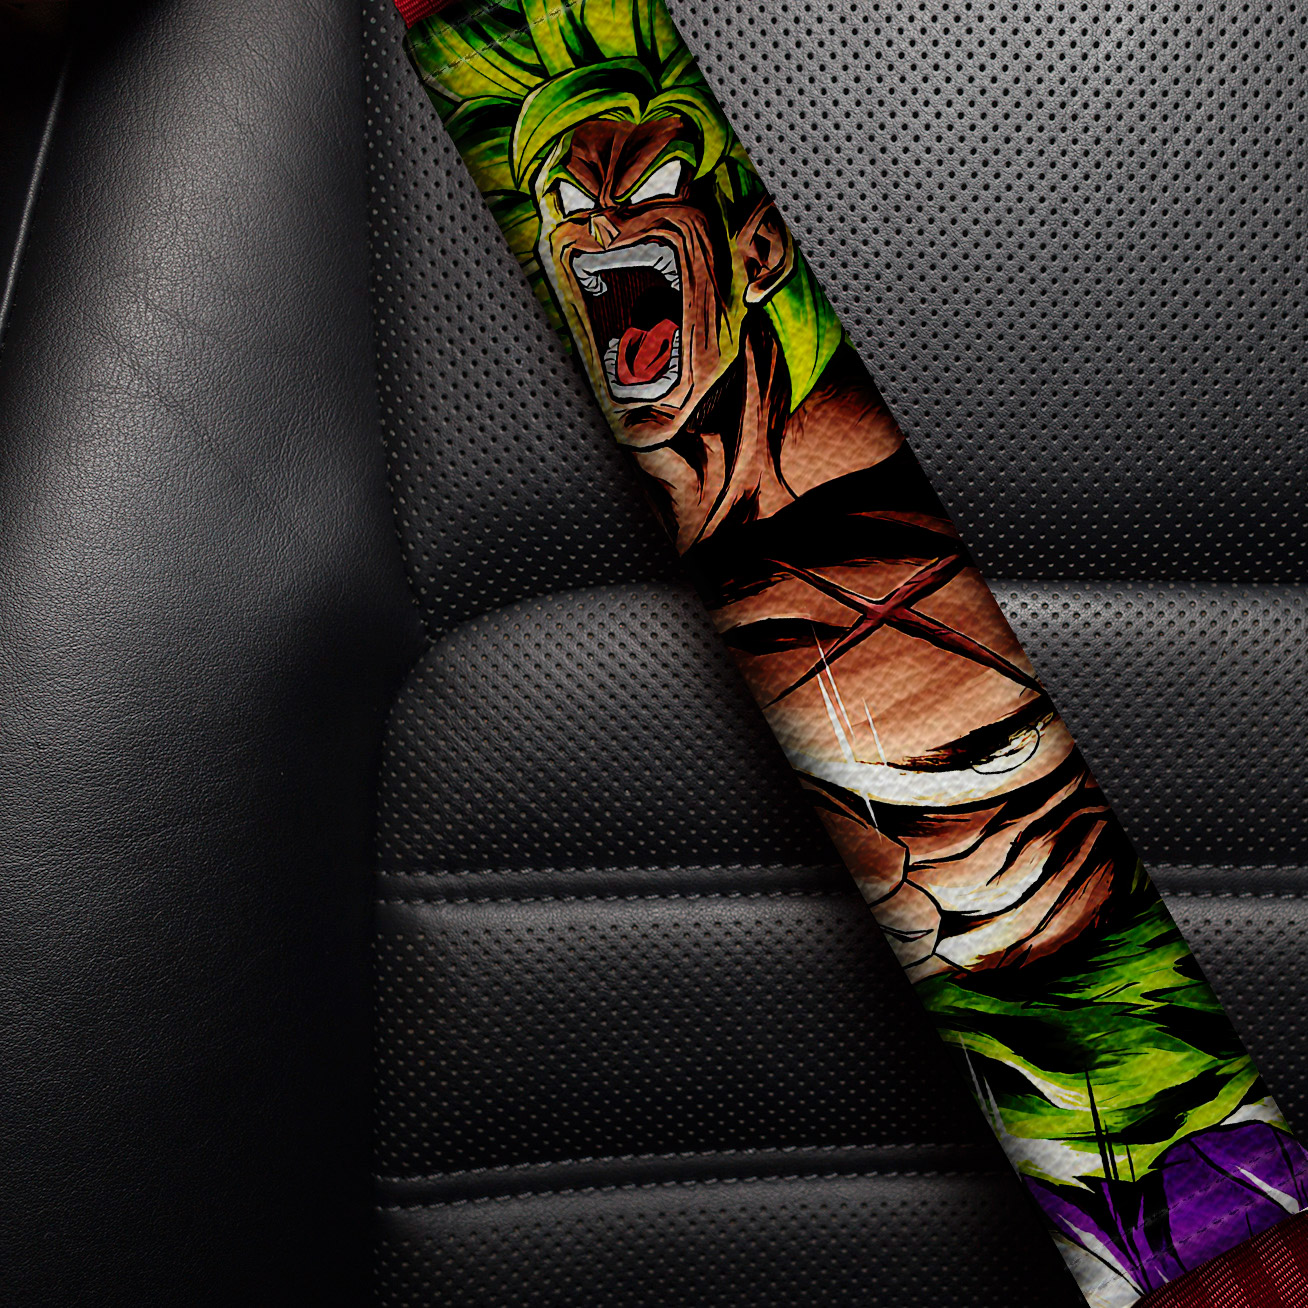 Broly Triple Dragon Z Super ドラゴンボール DBZ JDM Anime Manga Eco Leather Printed Car Seat Belt Cover